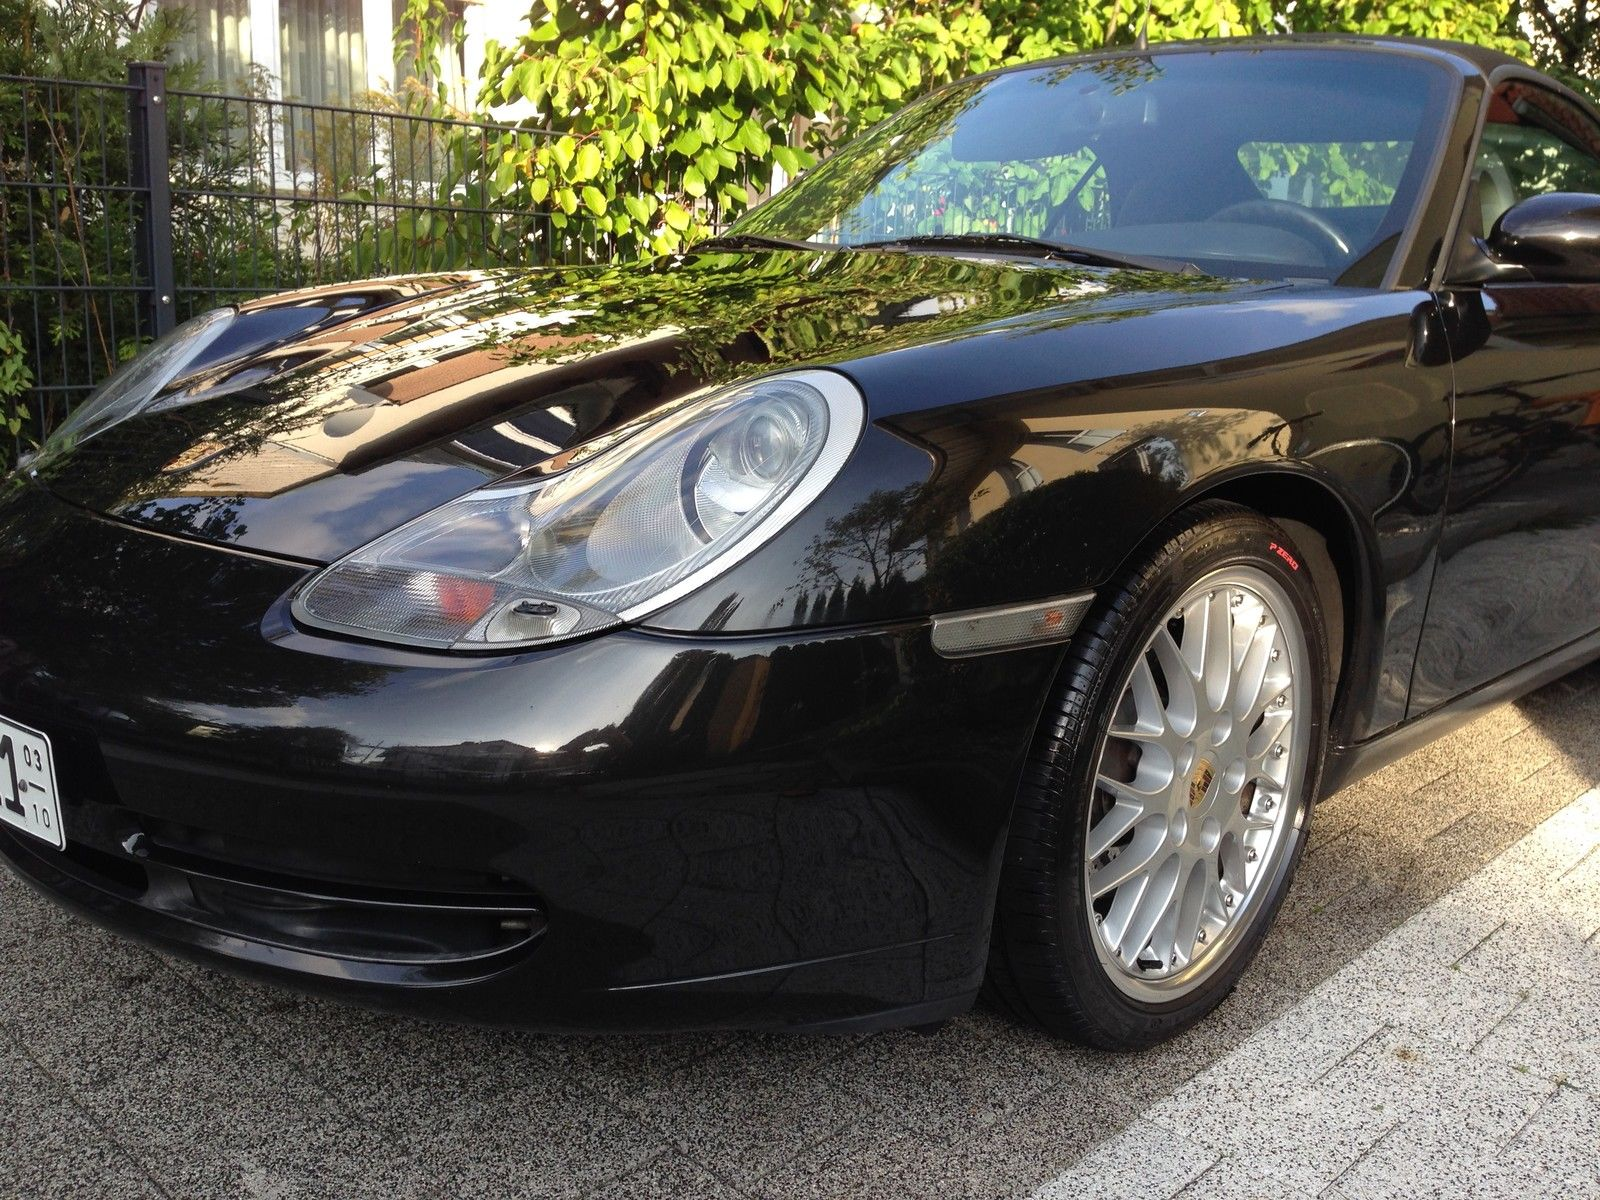 2000 porsche 911 carrera turbo cabriolet tiptronic s for sale. Black Bedroom Furniture Sets. Home Design Ideas